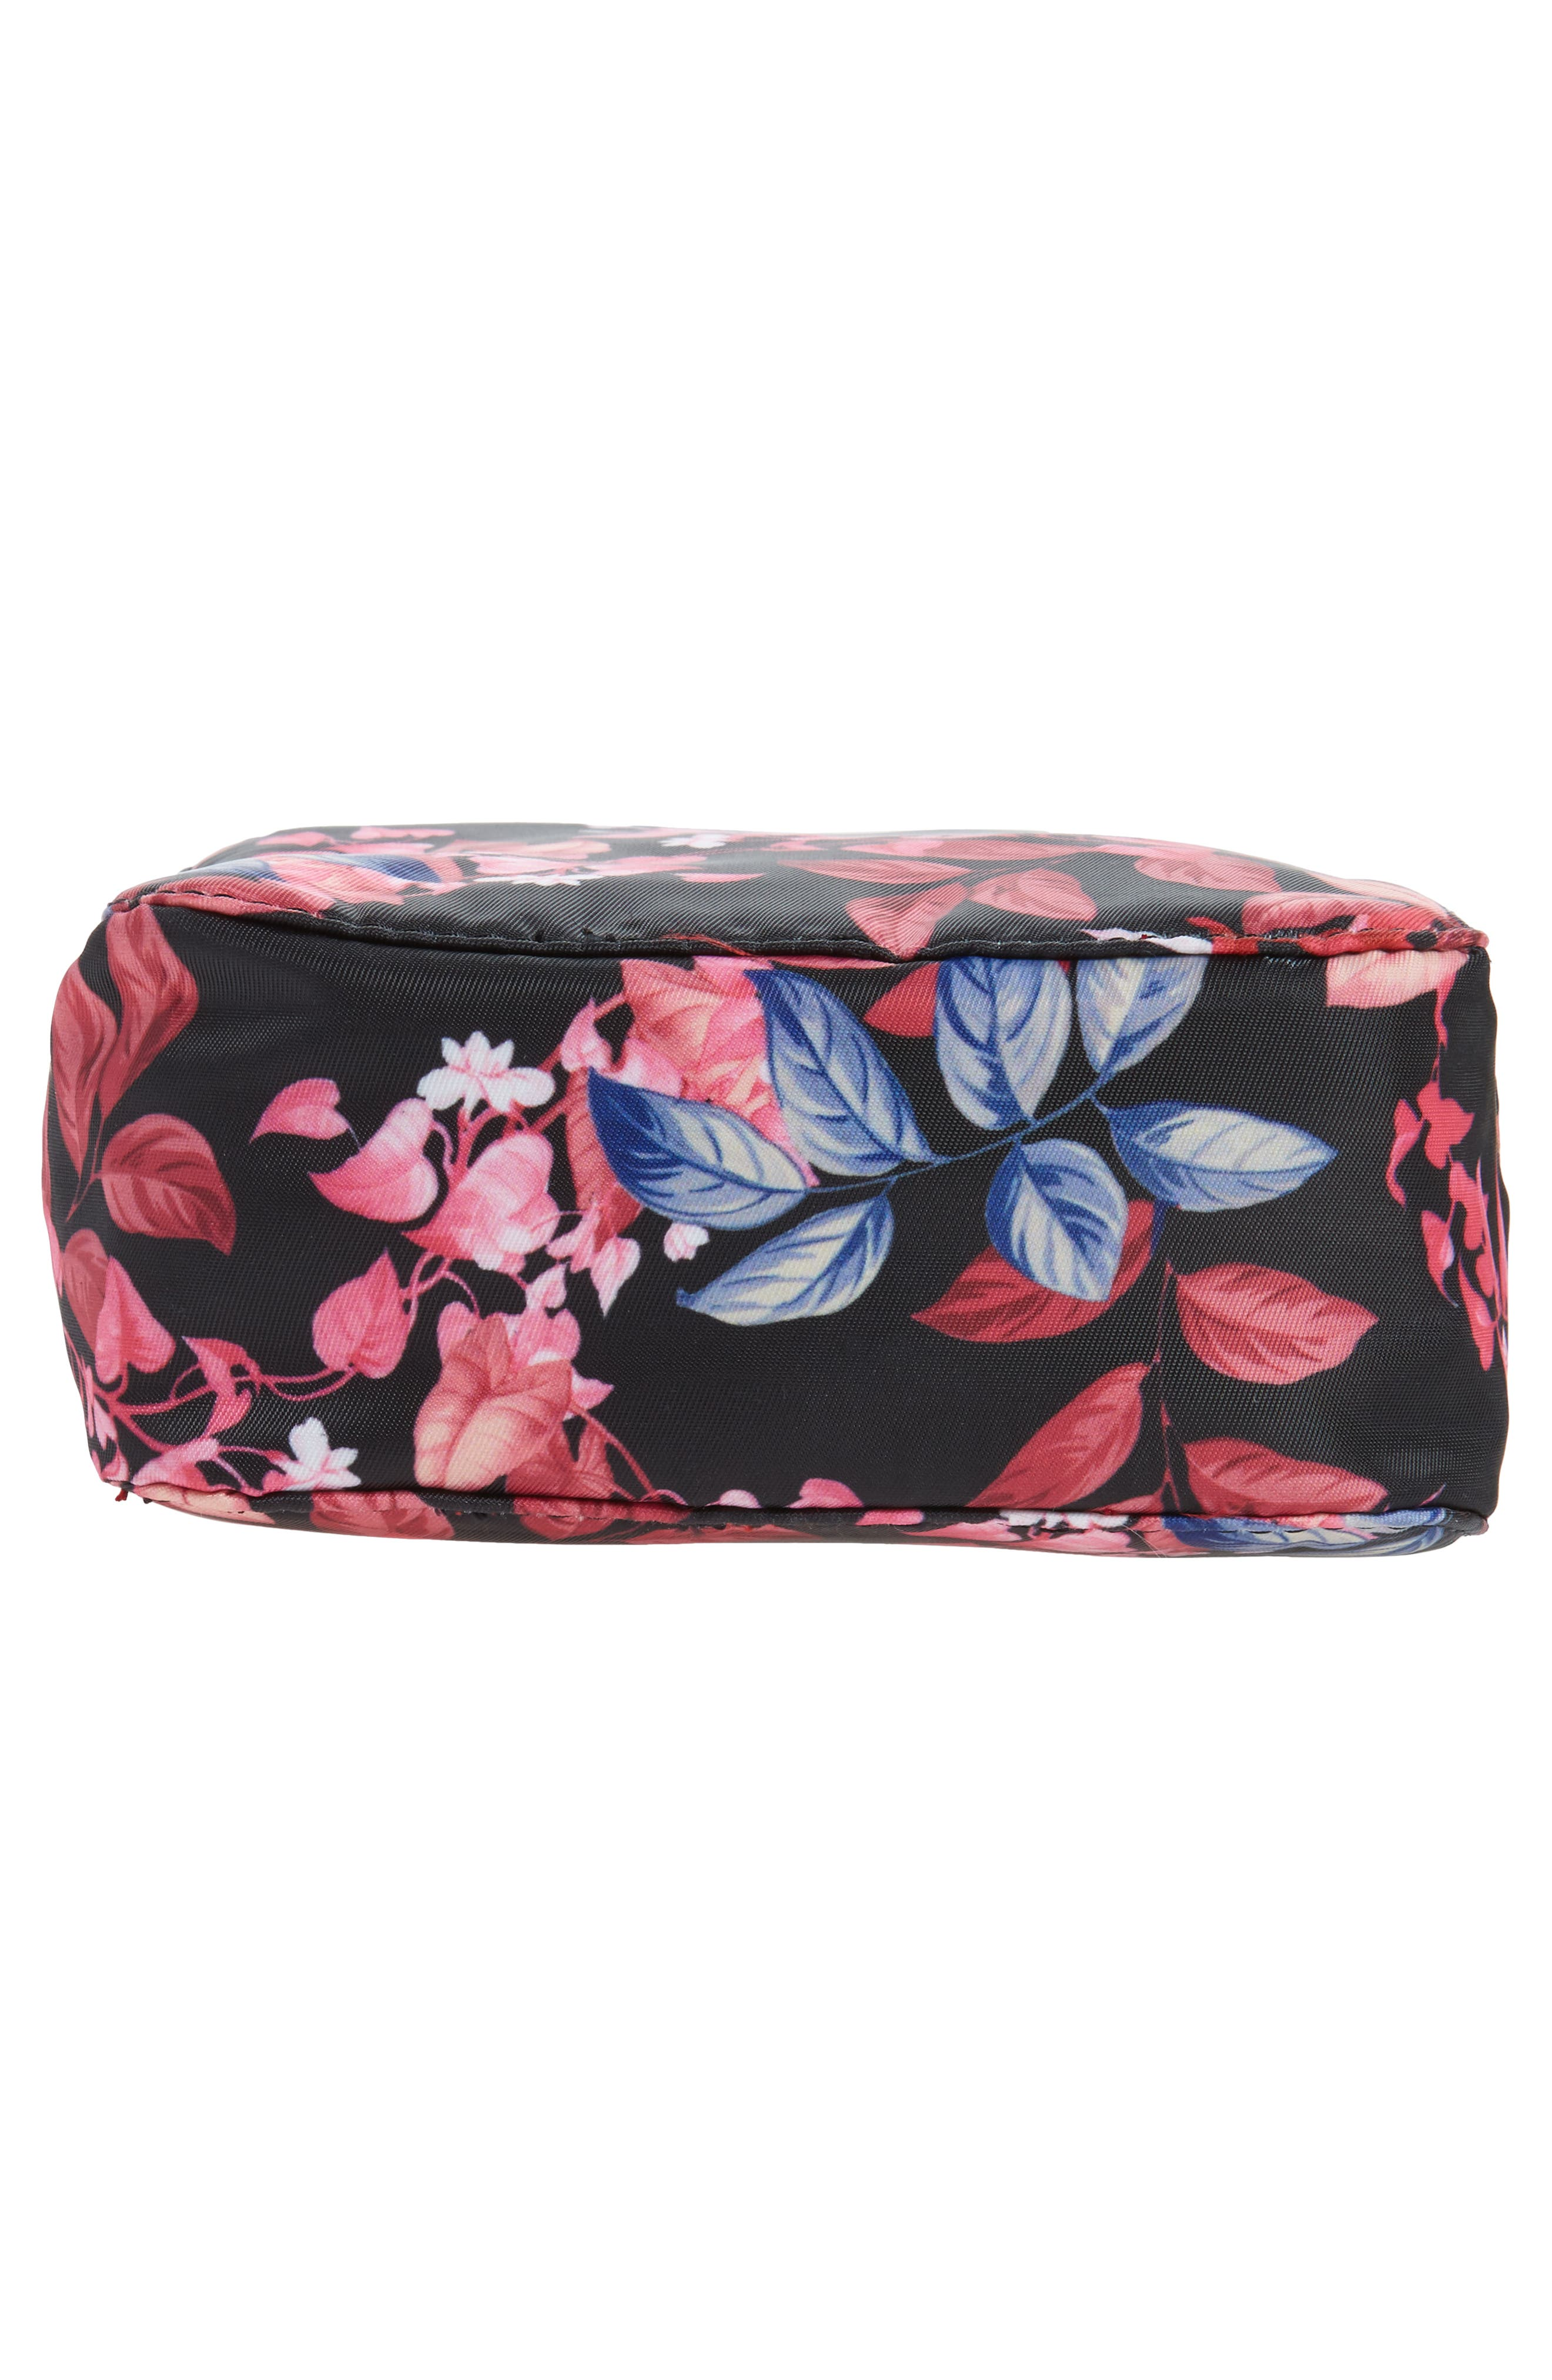 Alternate Image 5  - Tommy Bahama Up in the Air Cosmetics Case & Eye Mask